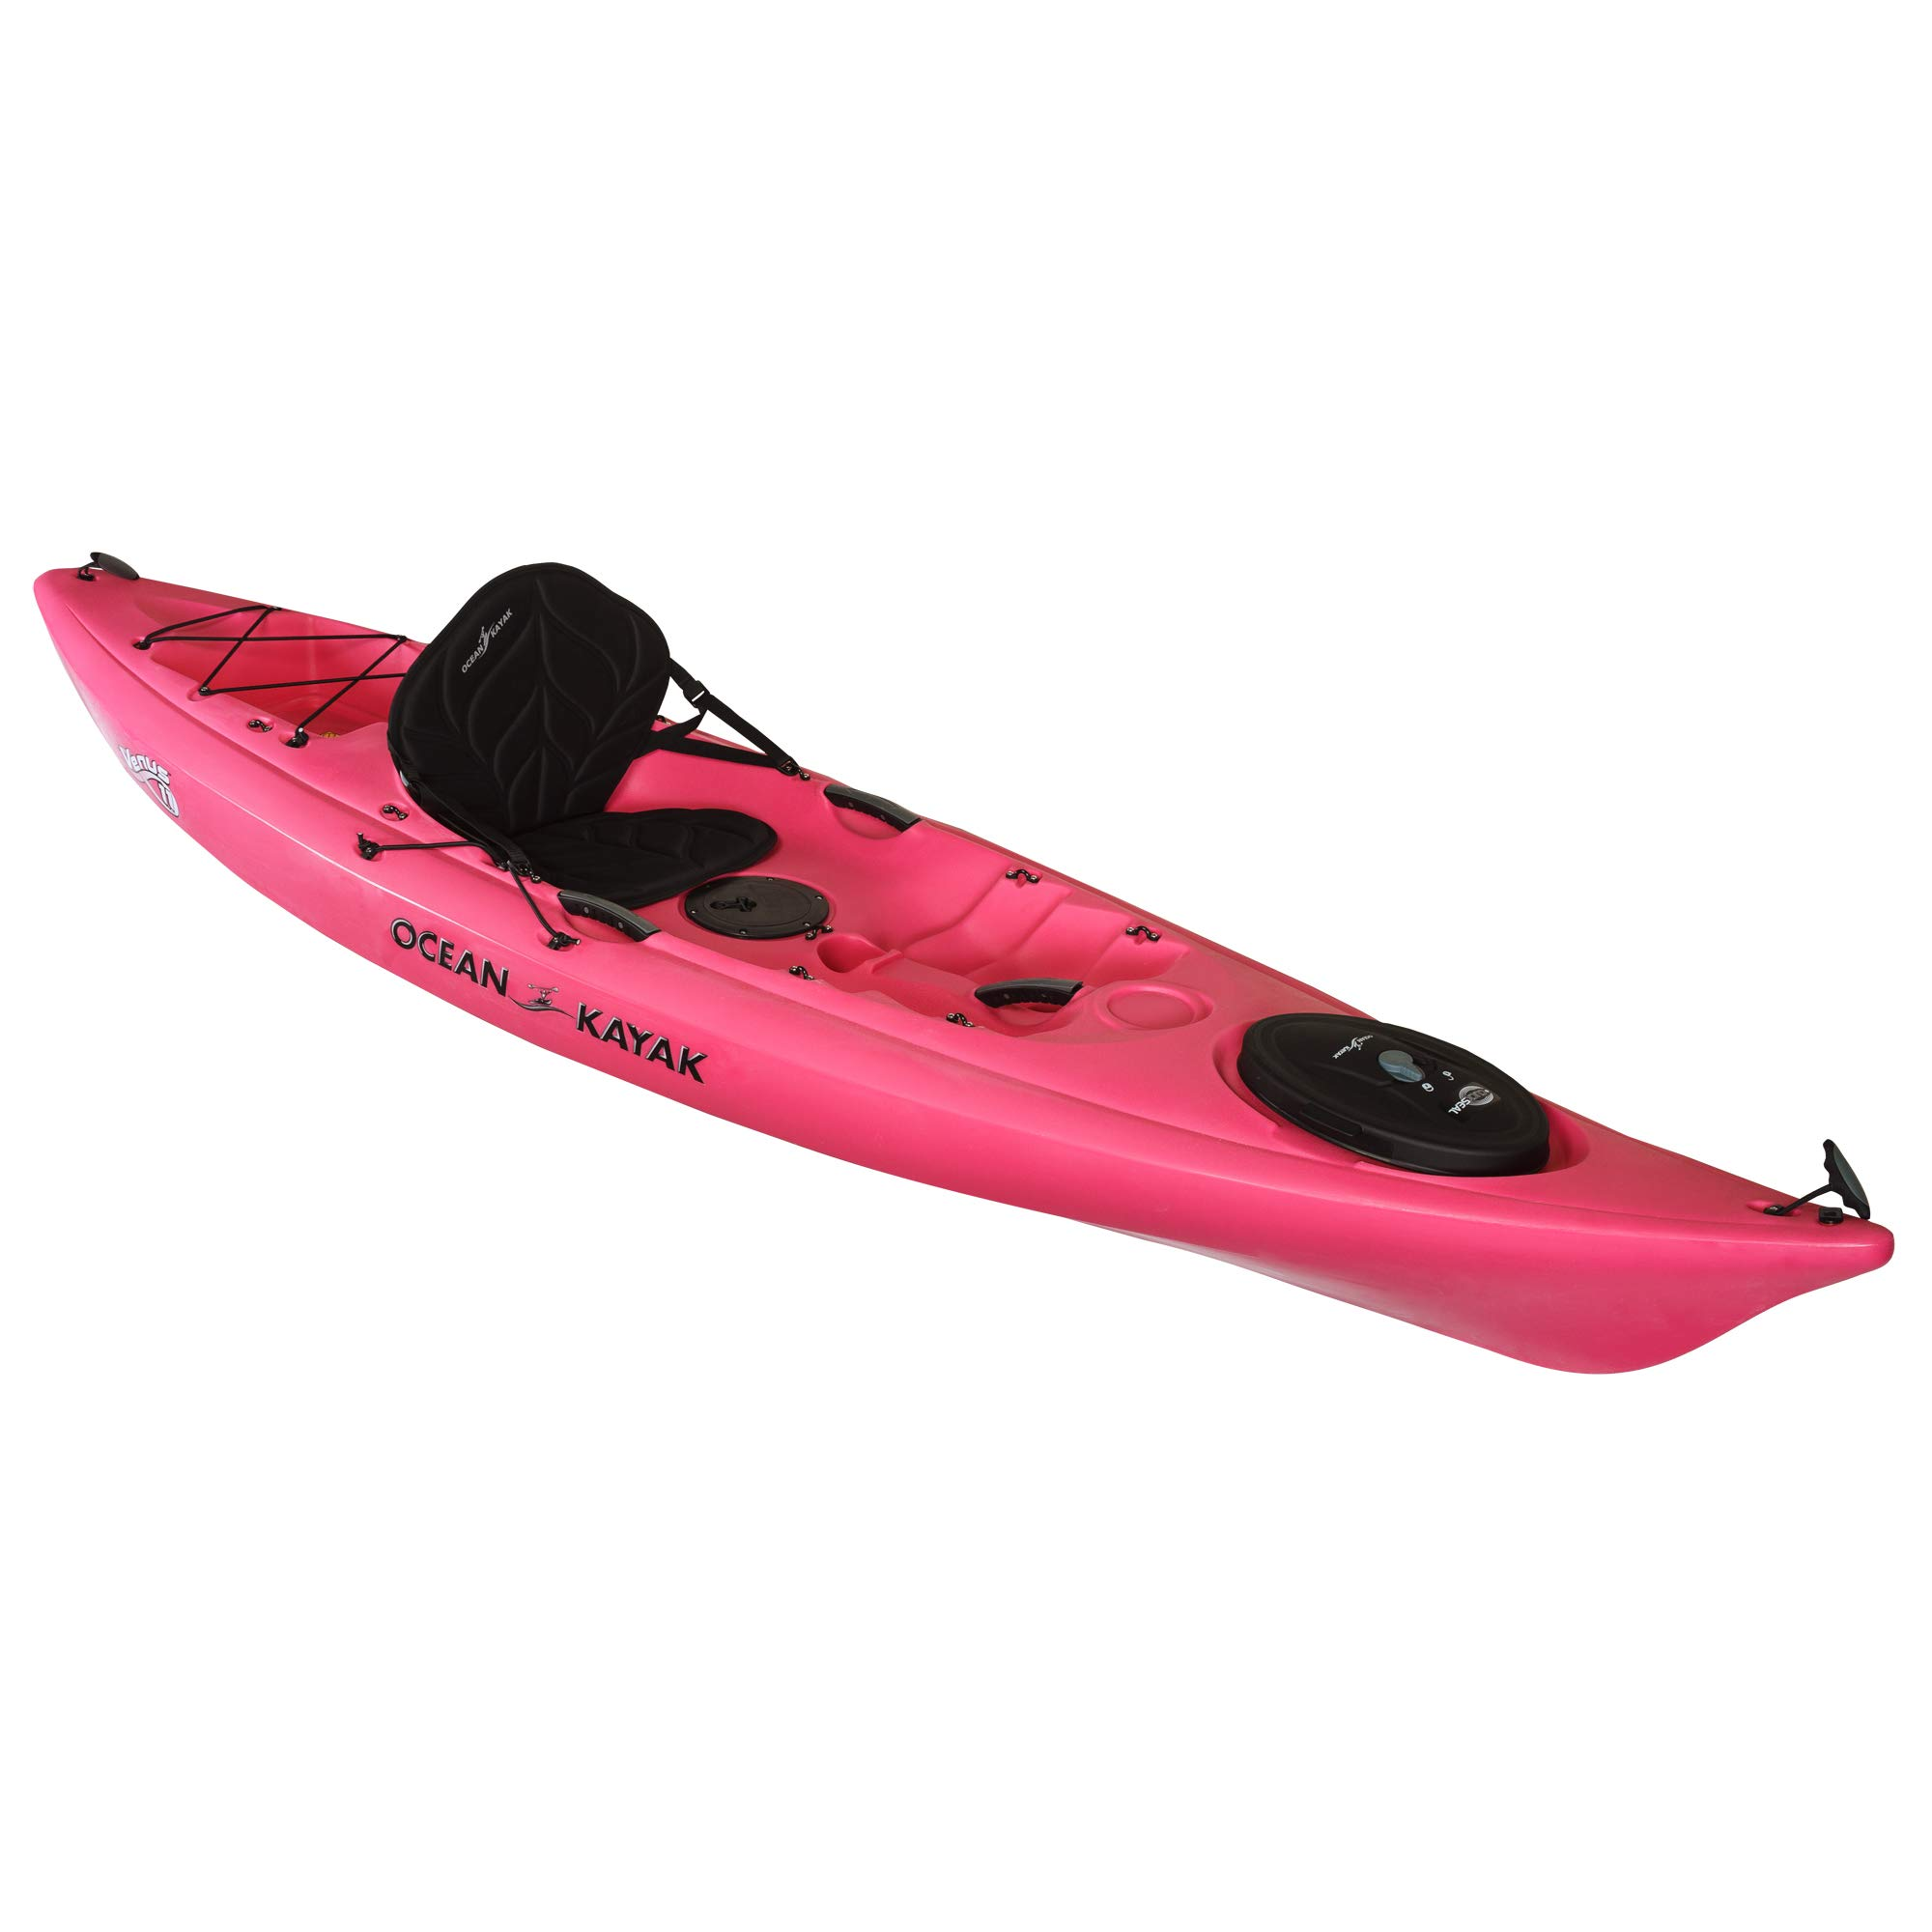 Ocean Kayak Venus 11 One-Person Women's Sit-On-Top Kayak, Fuchsia, 10 Feet 8 Inches